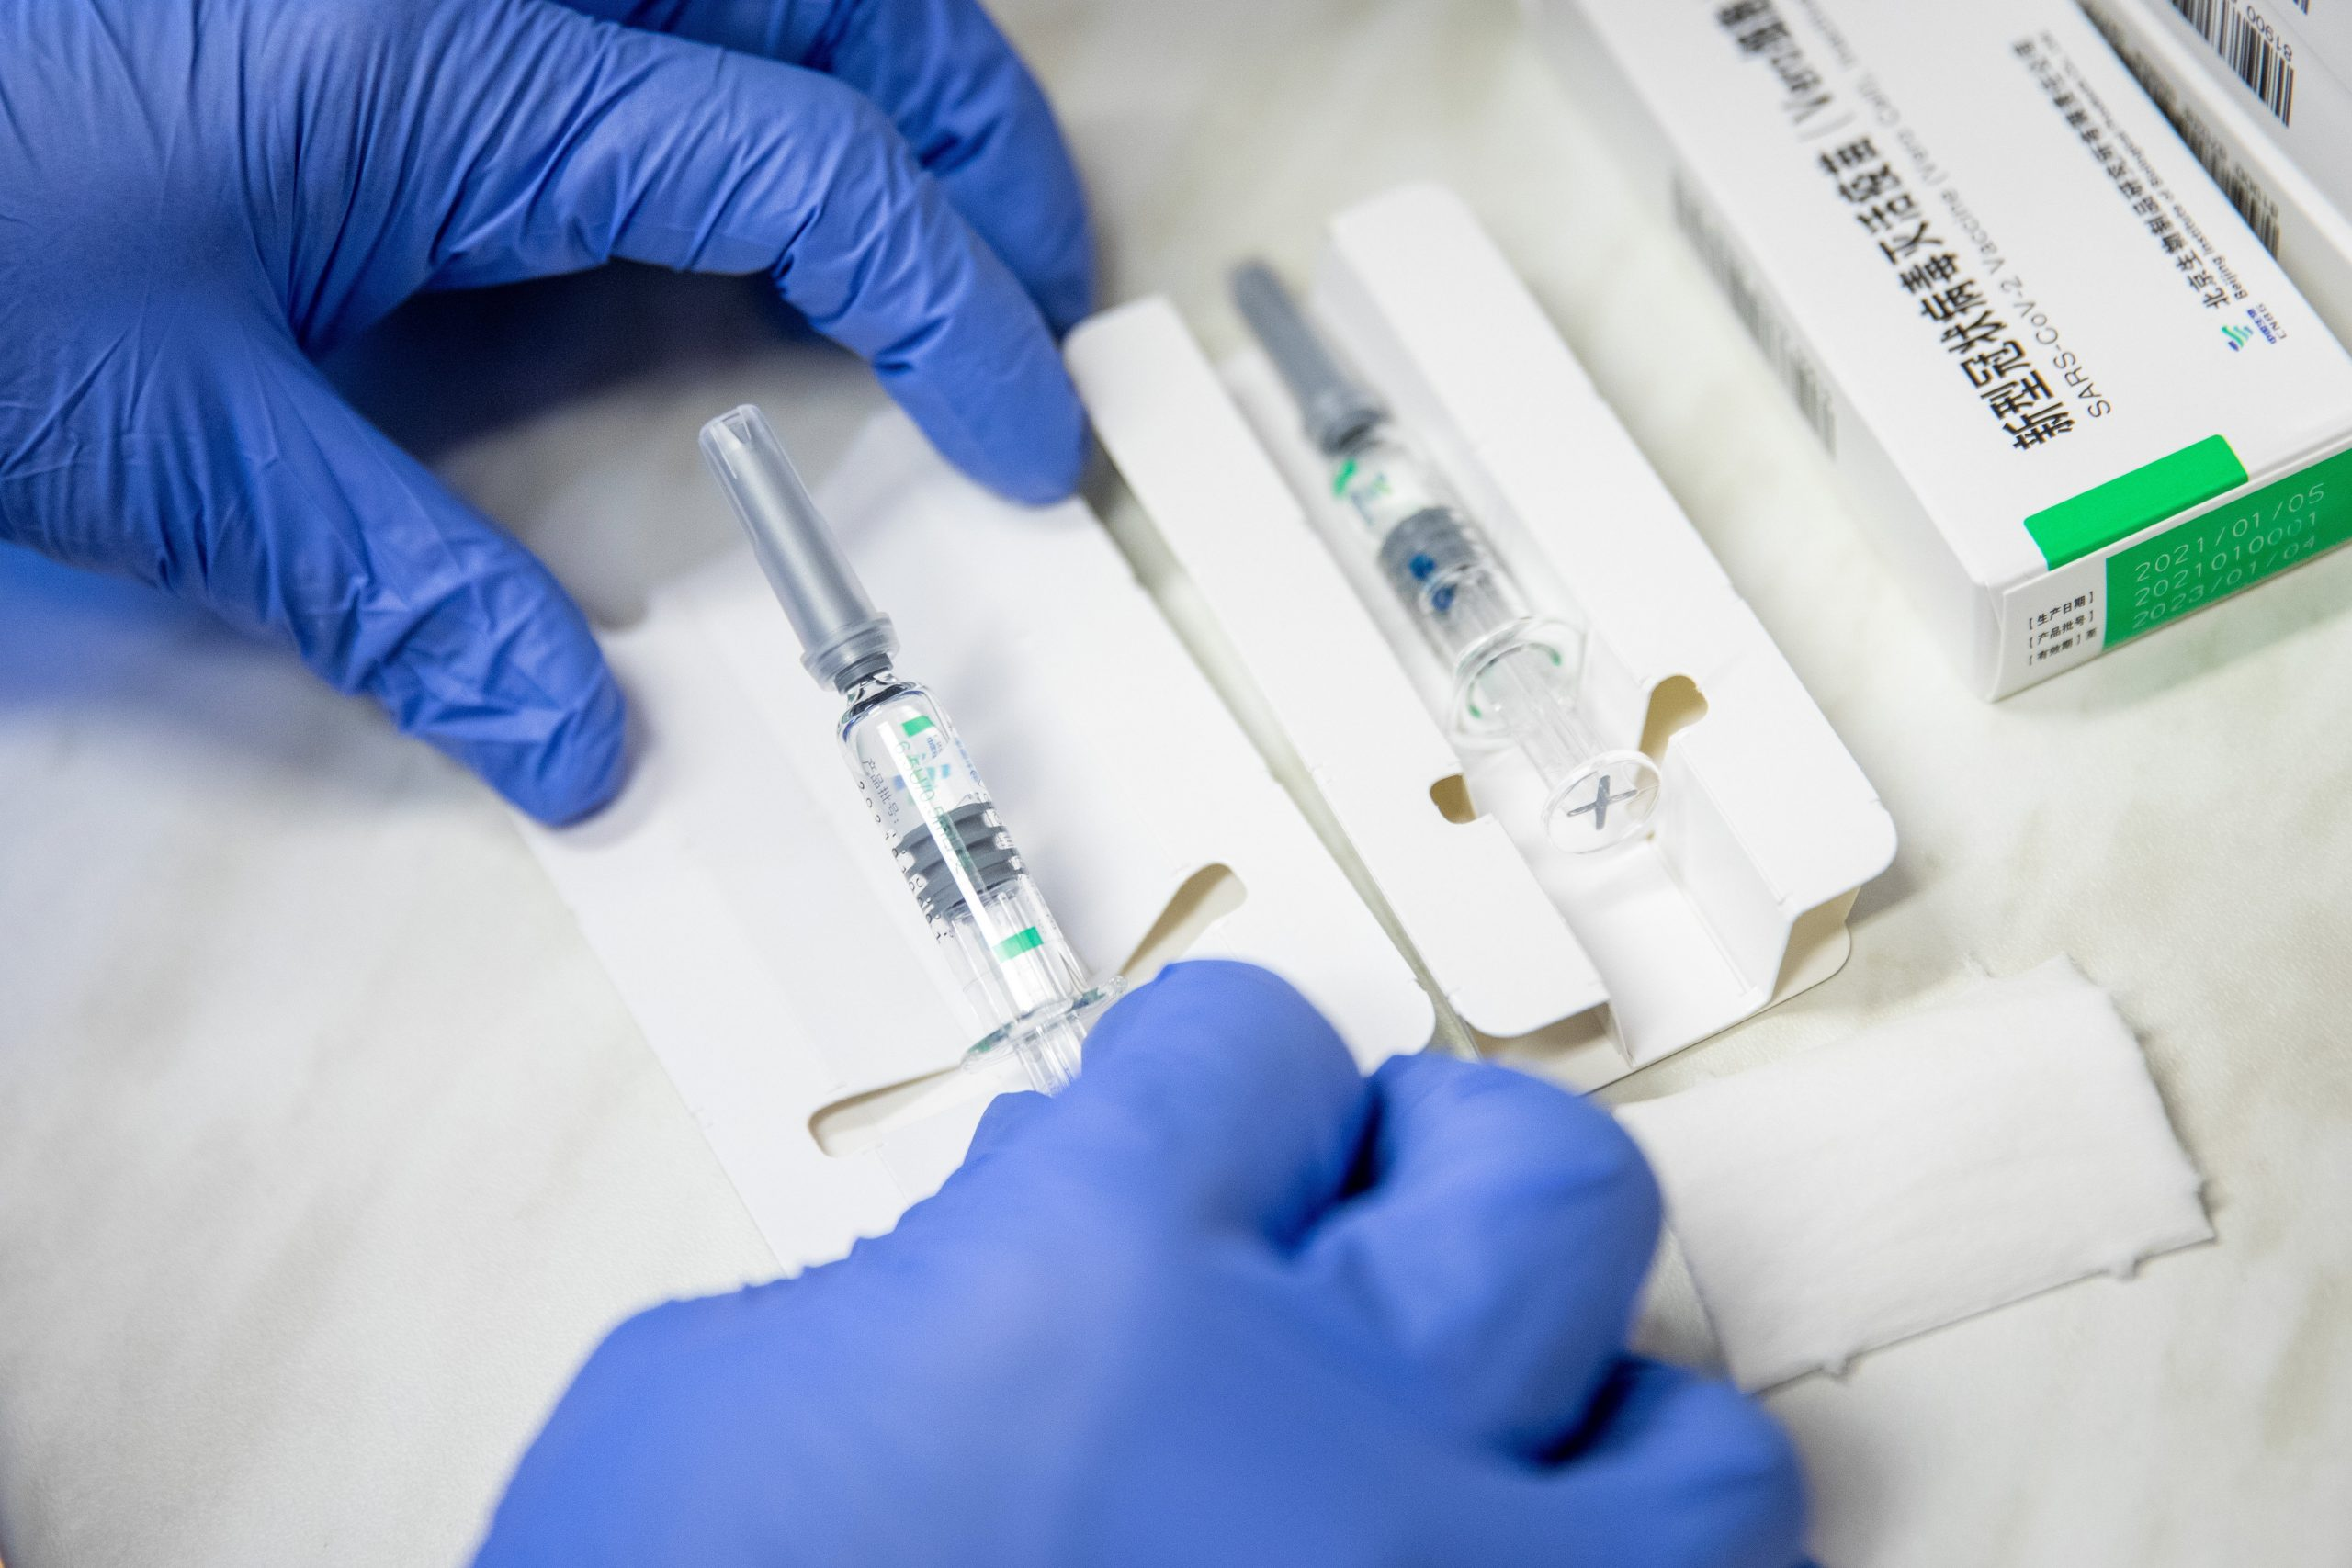 Hungary's Vaccinations: Pfizer Used for Most, Sinopharm Catching Up